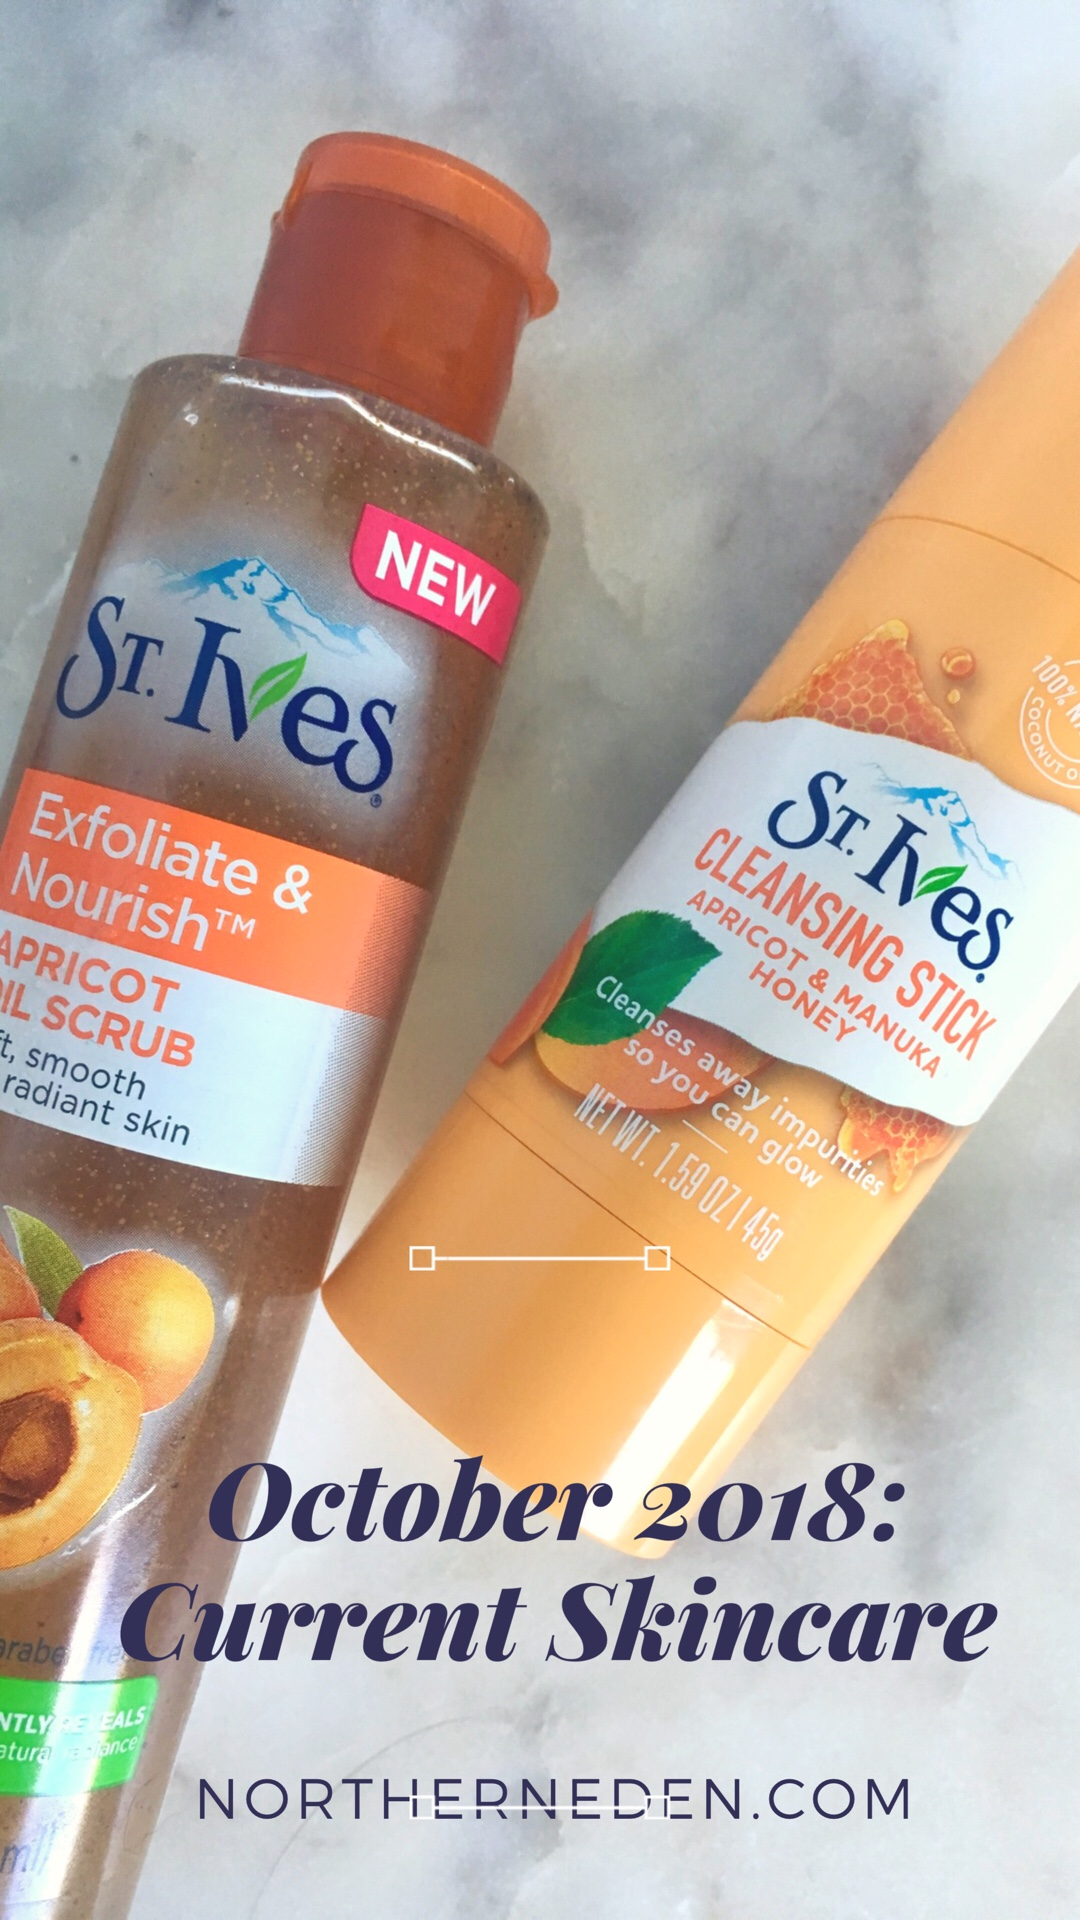 My Current Skincare: October 2018